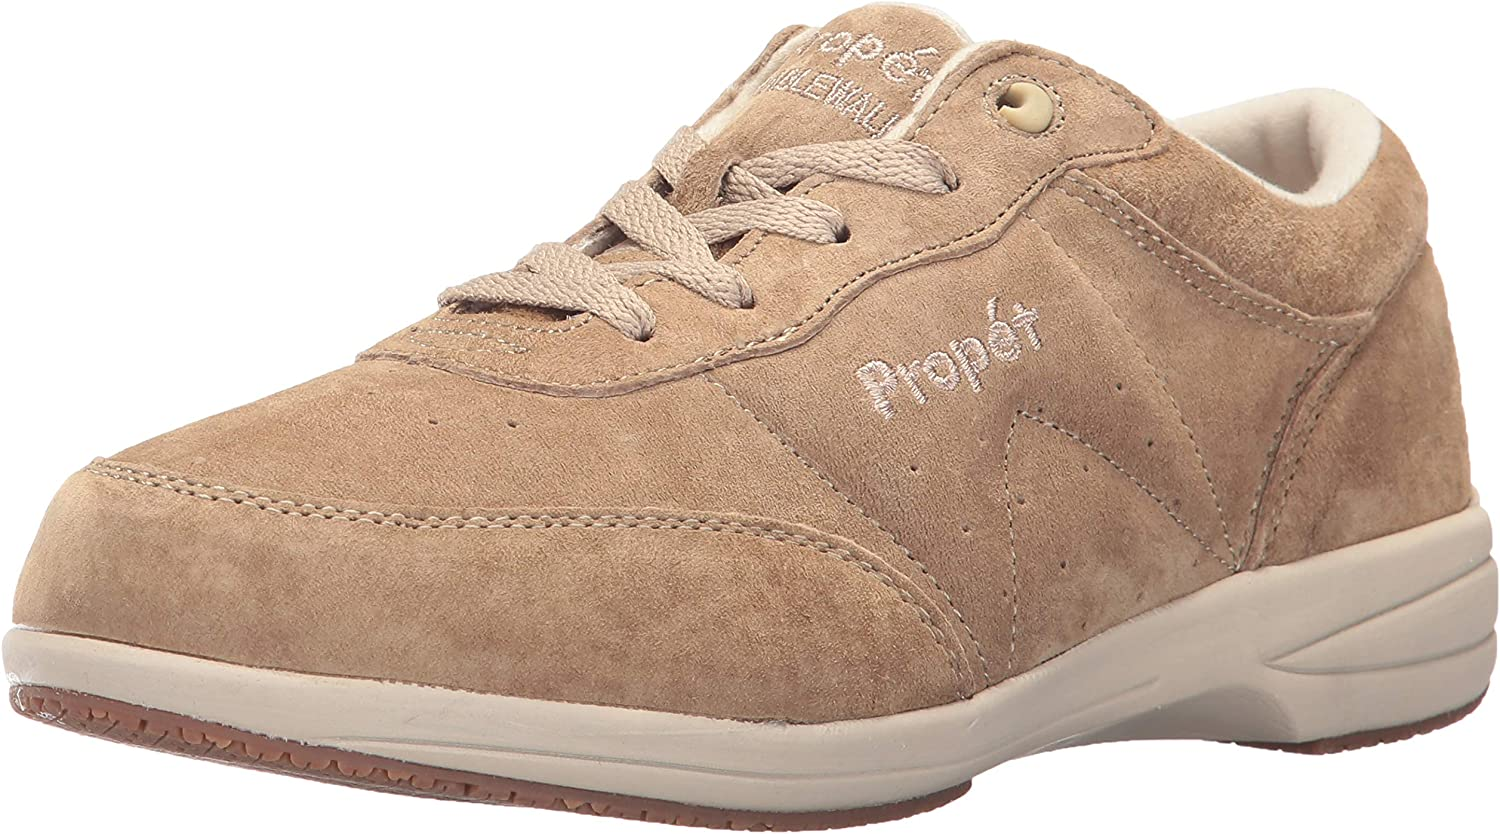 Max 67% OFF Propet Women's Washable Walker Sale special price Walking SR 9H Narrow Taupe Shoe